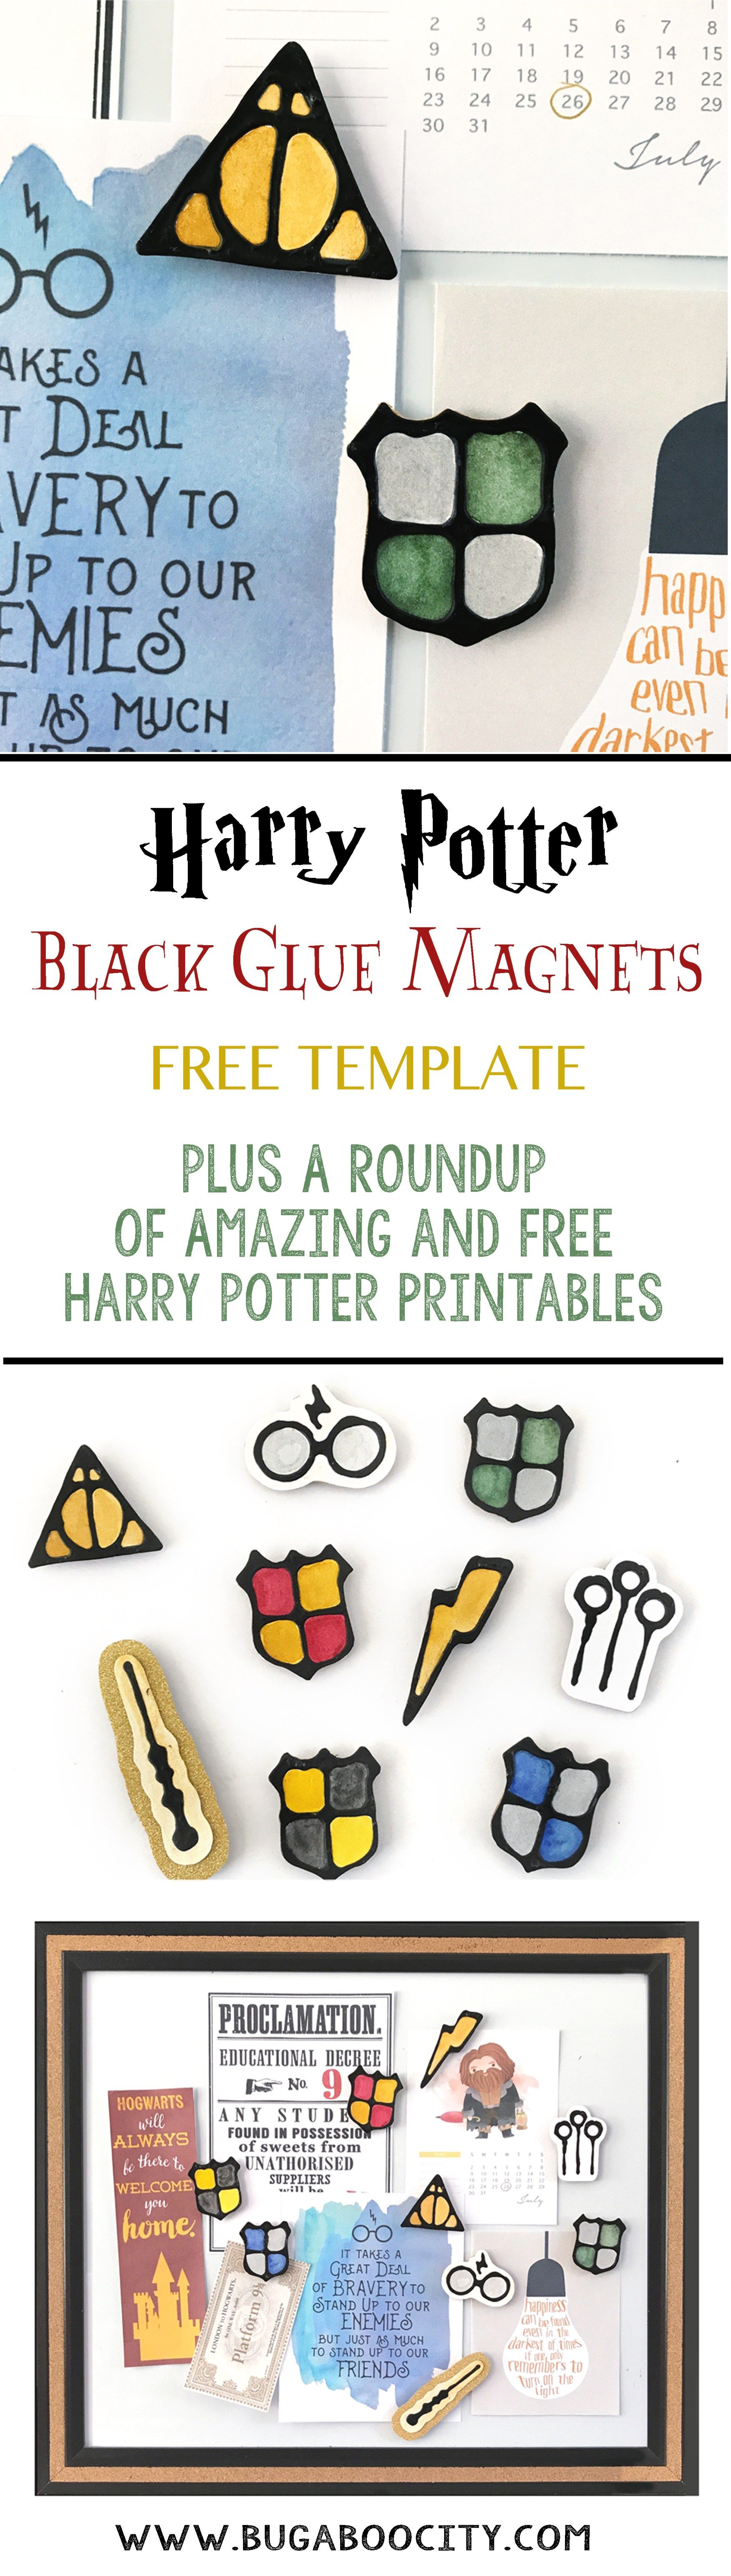 Harry Potter Black Glue Magnets and a Roundup of Free HP Printables